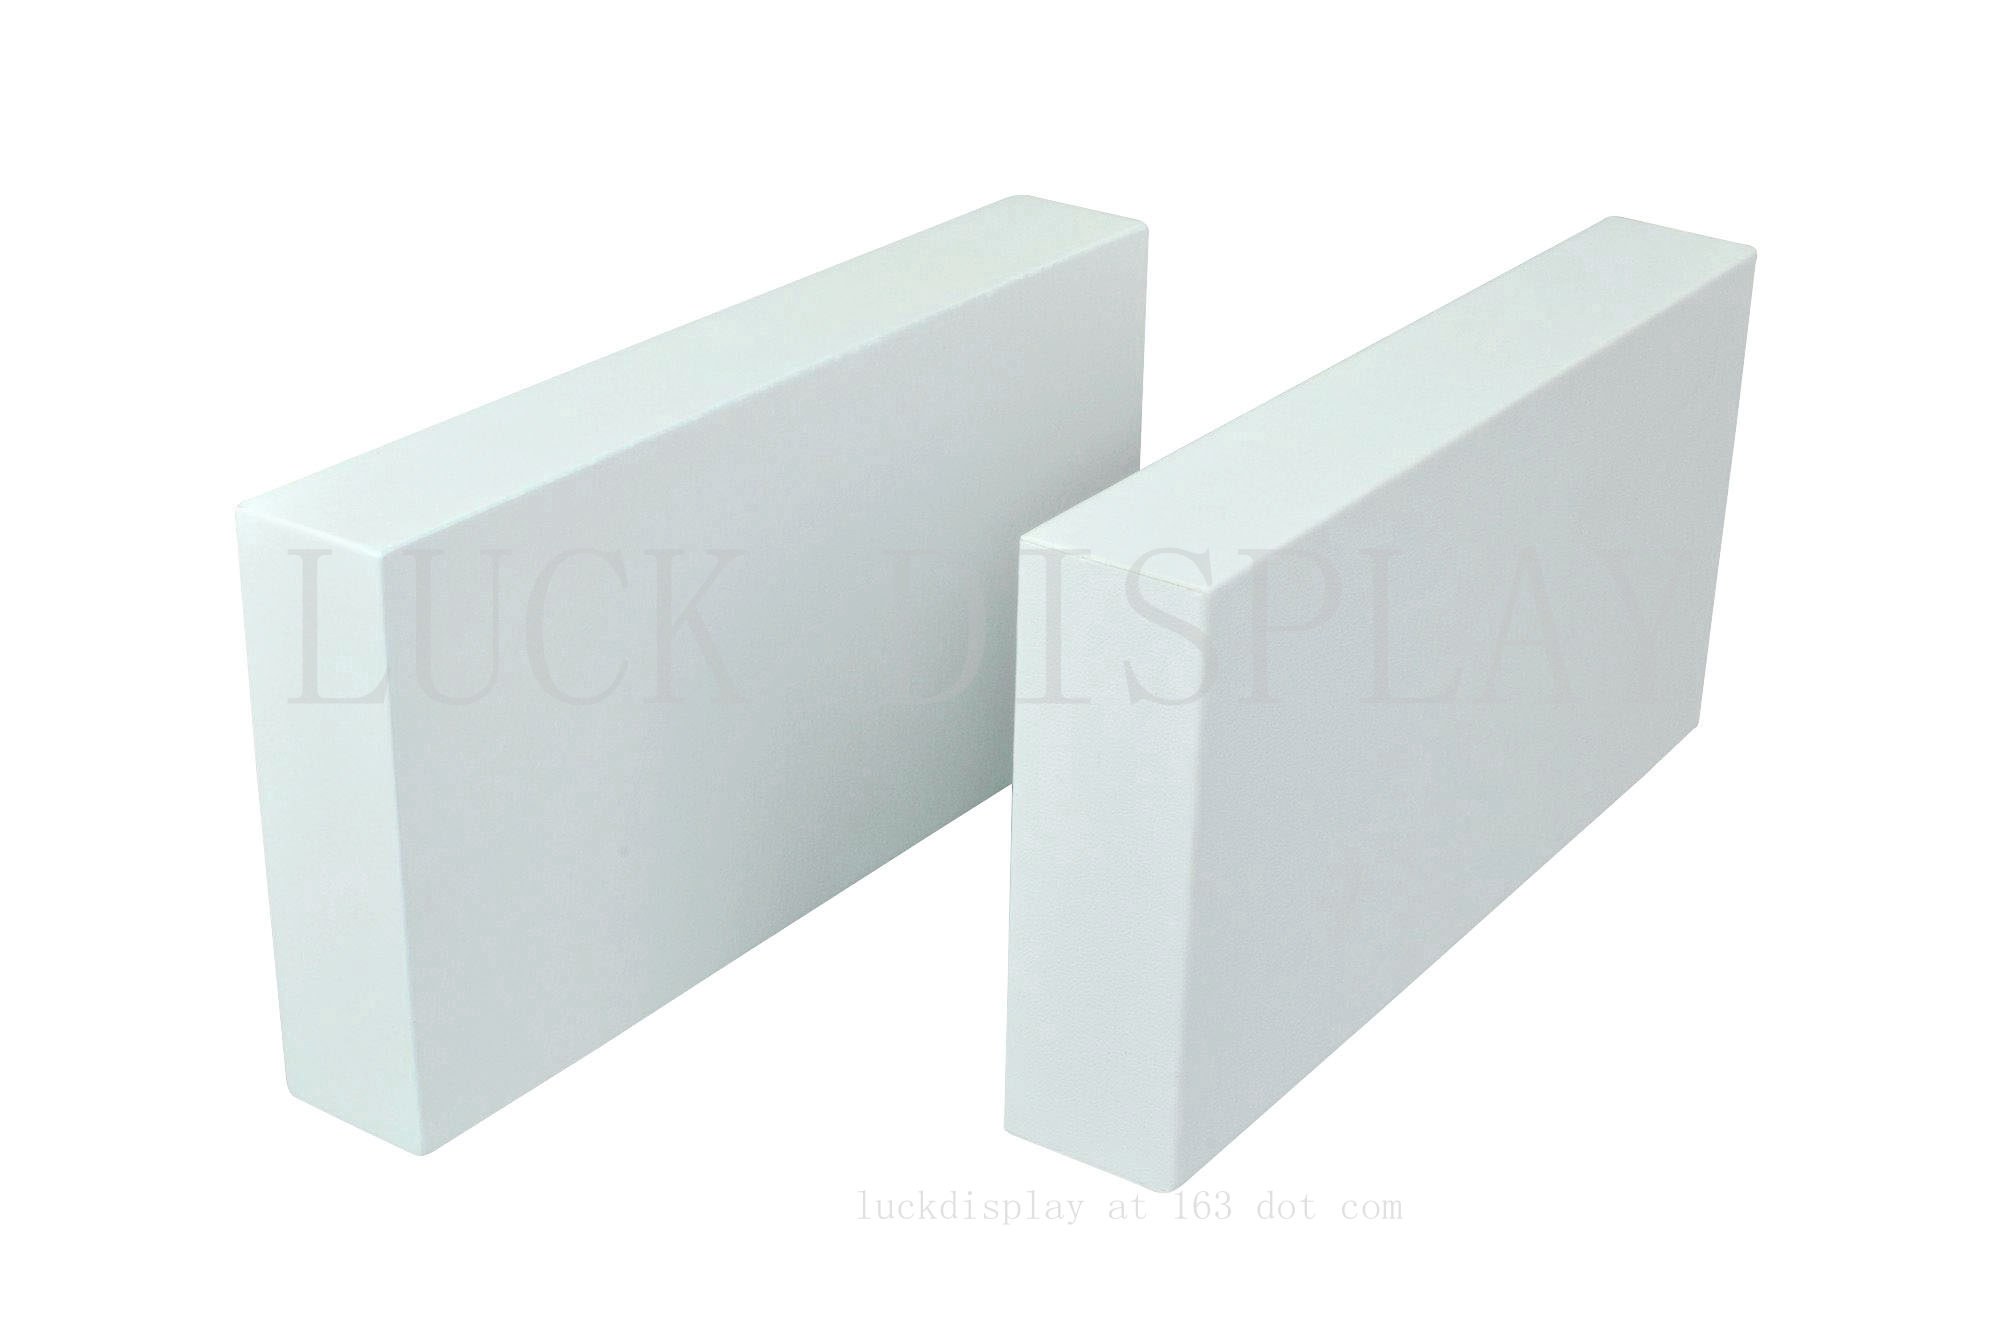 LUCK Display Factory Provide Be-Spoke Display Block Riser Base Board For Jewelry Store Display Props